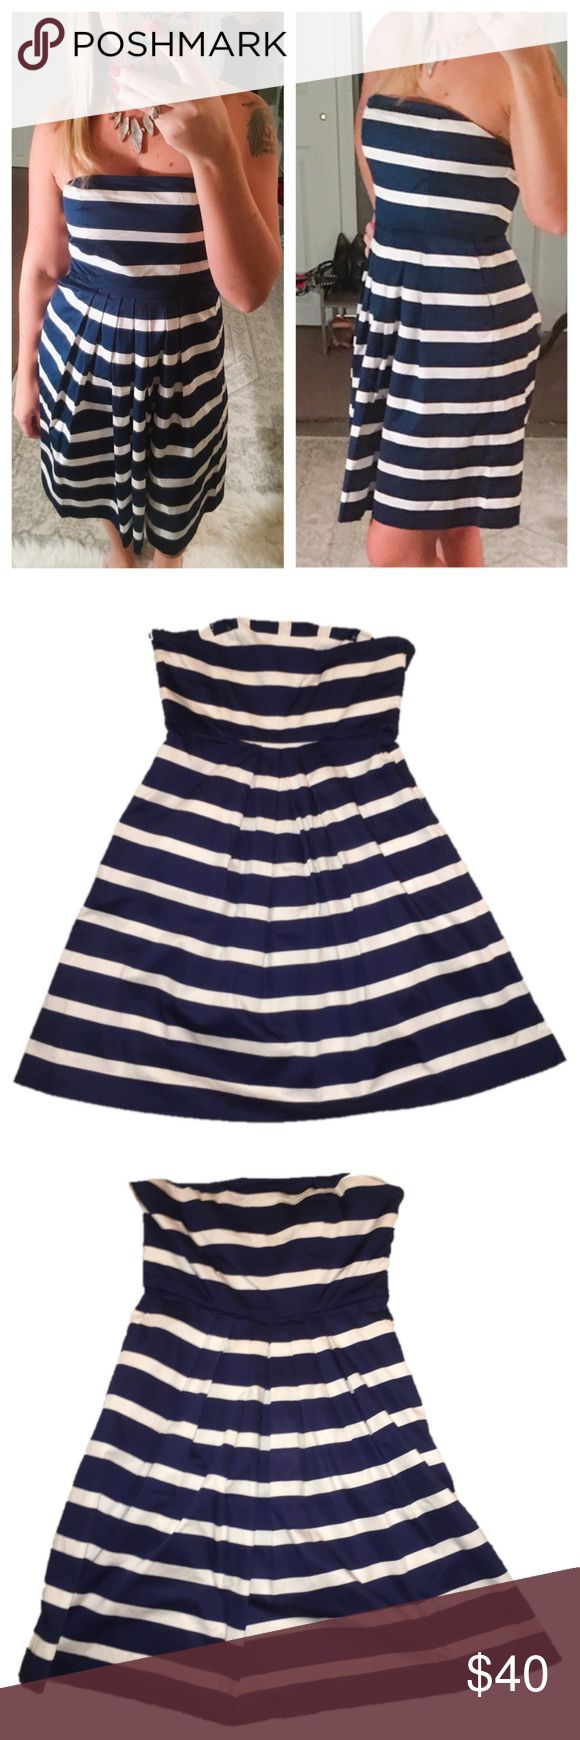 "Navy blue striped gap dress NWOT NWOT gap strapless dress , size 4. Chest: 15"" , Length: 29"", waist: 13.5"". No flaws. Has pockets but still sewn shut. GAP Dresses Strapless"